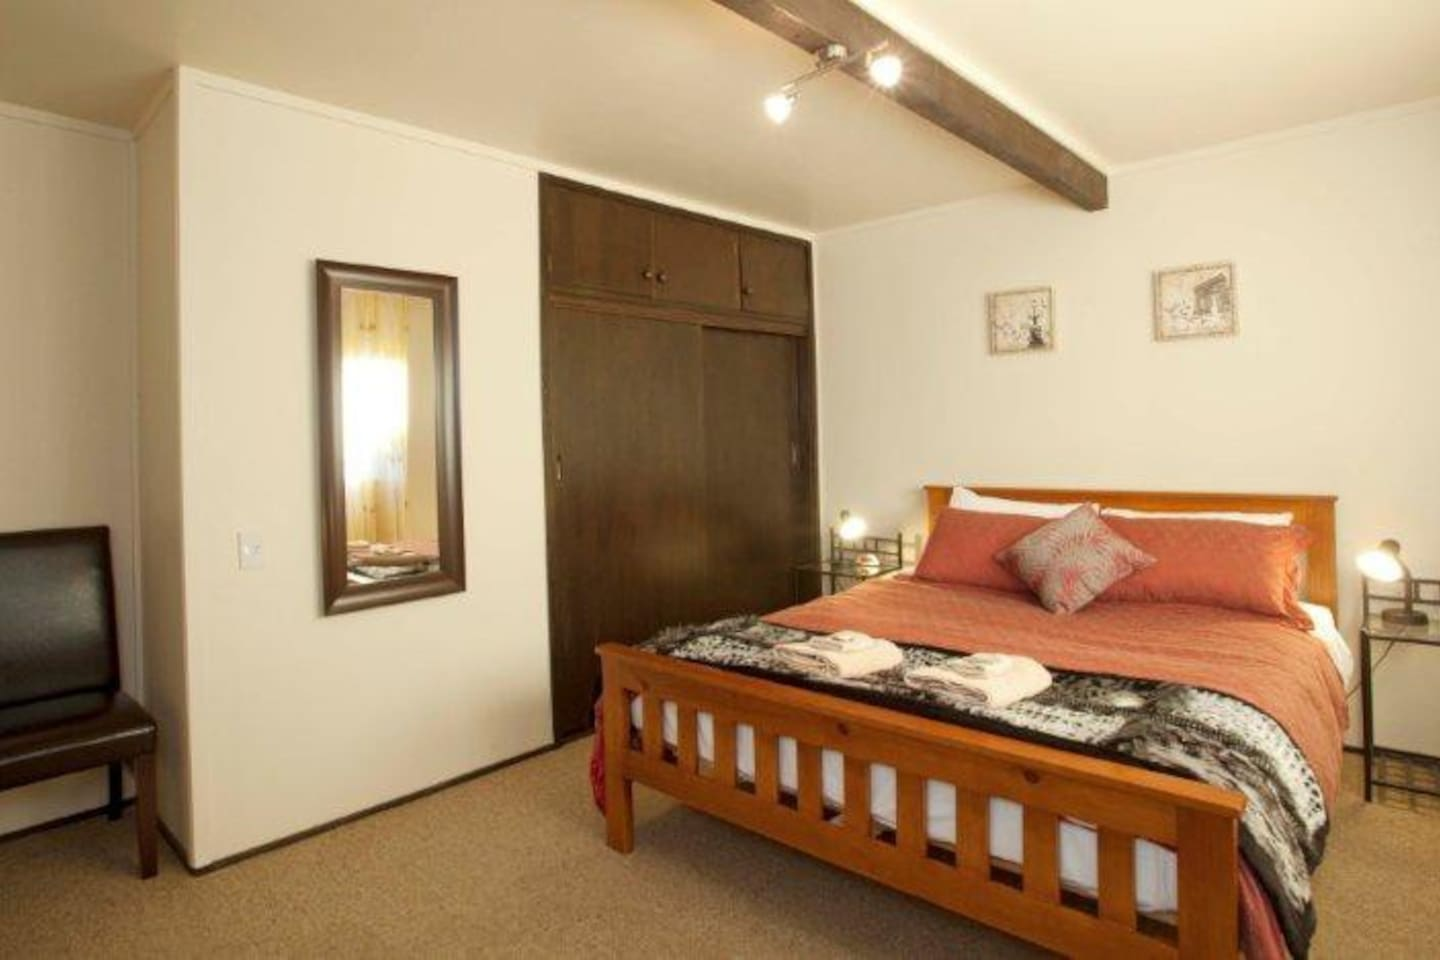 The Luna room, with a kingsize bed and private bathroom, ideal for moonlighting travellers!